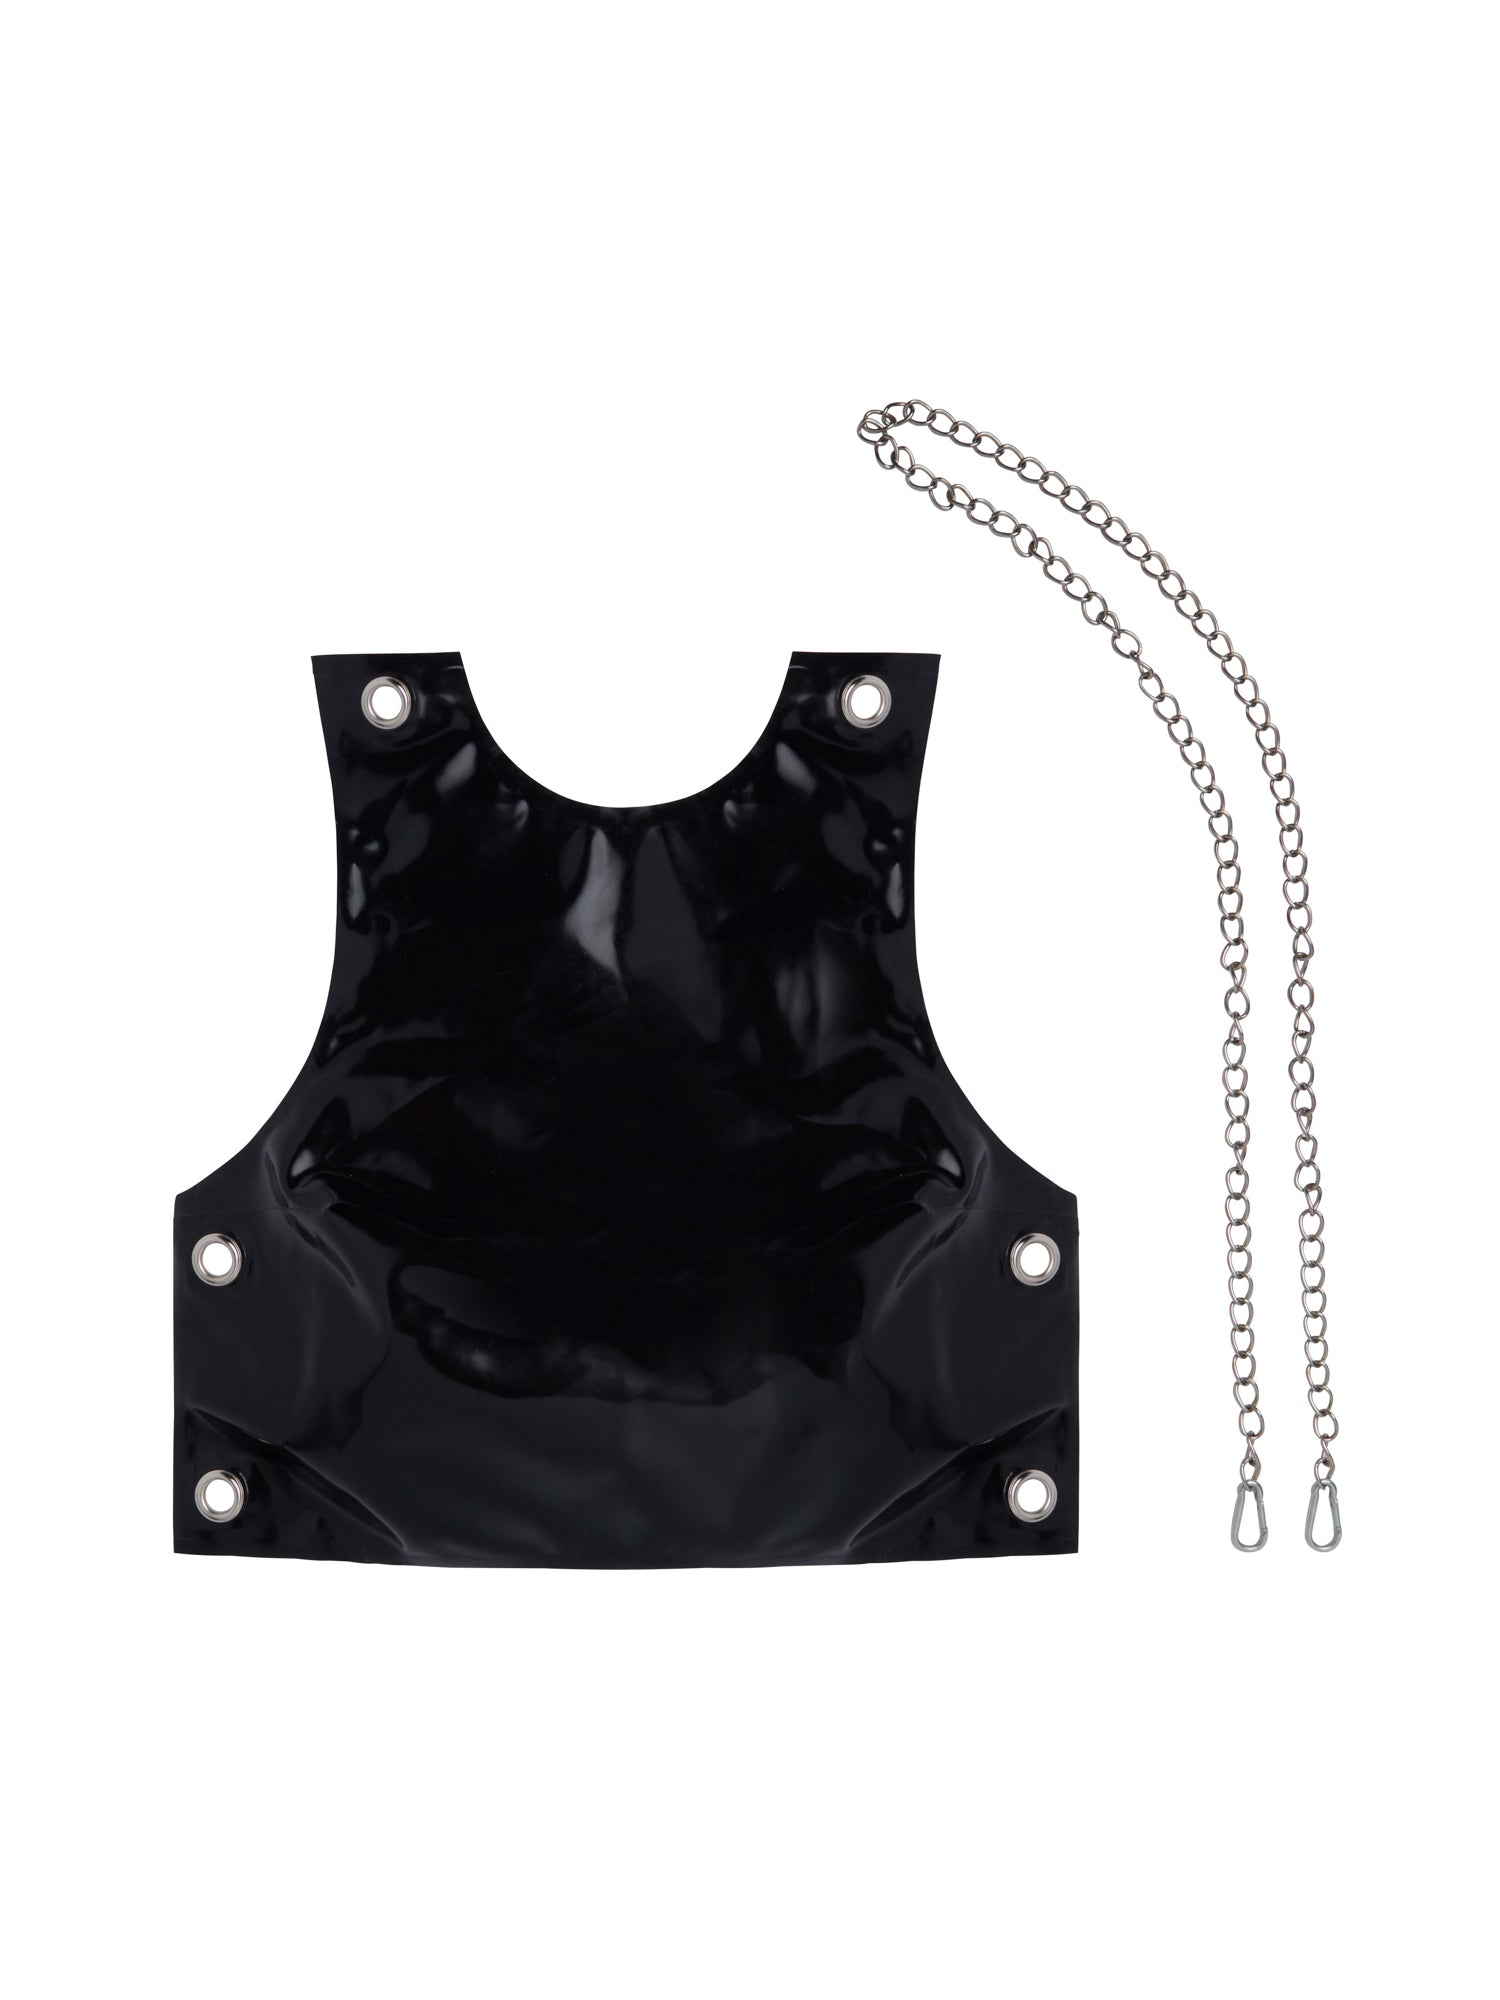 Studio Fclx Latex Chain Top